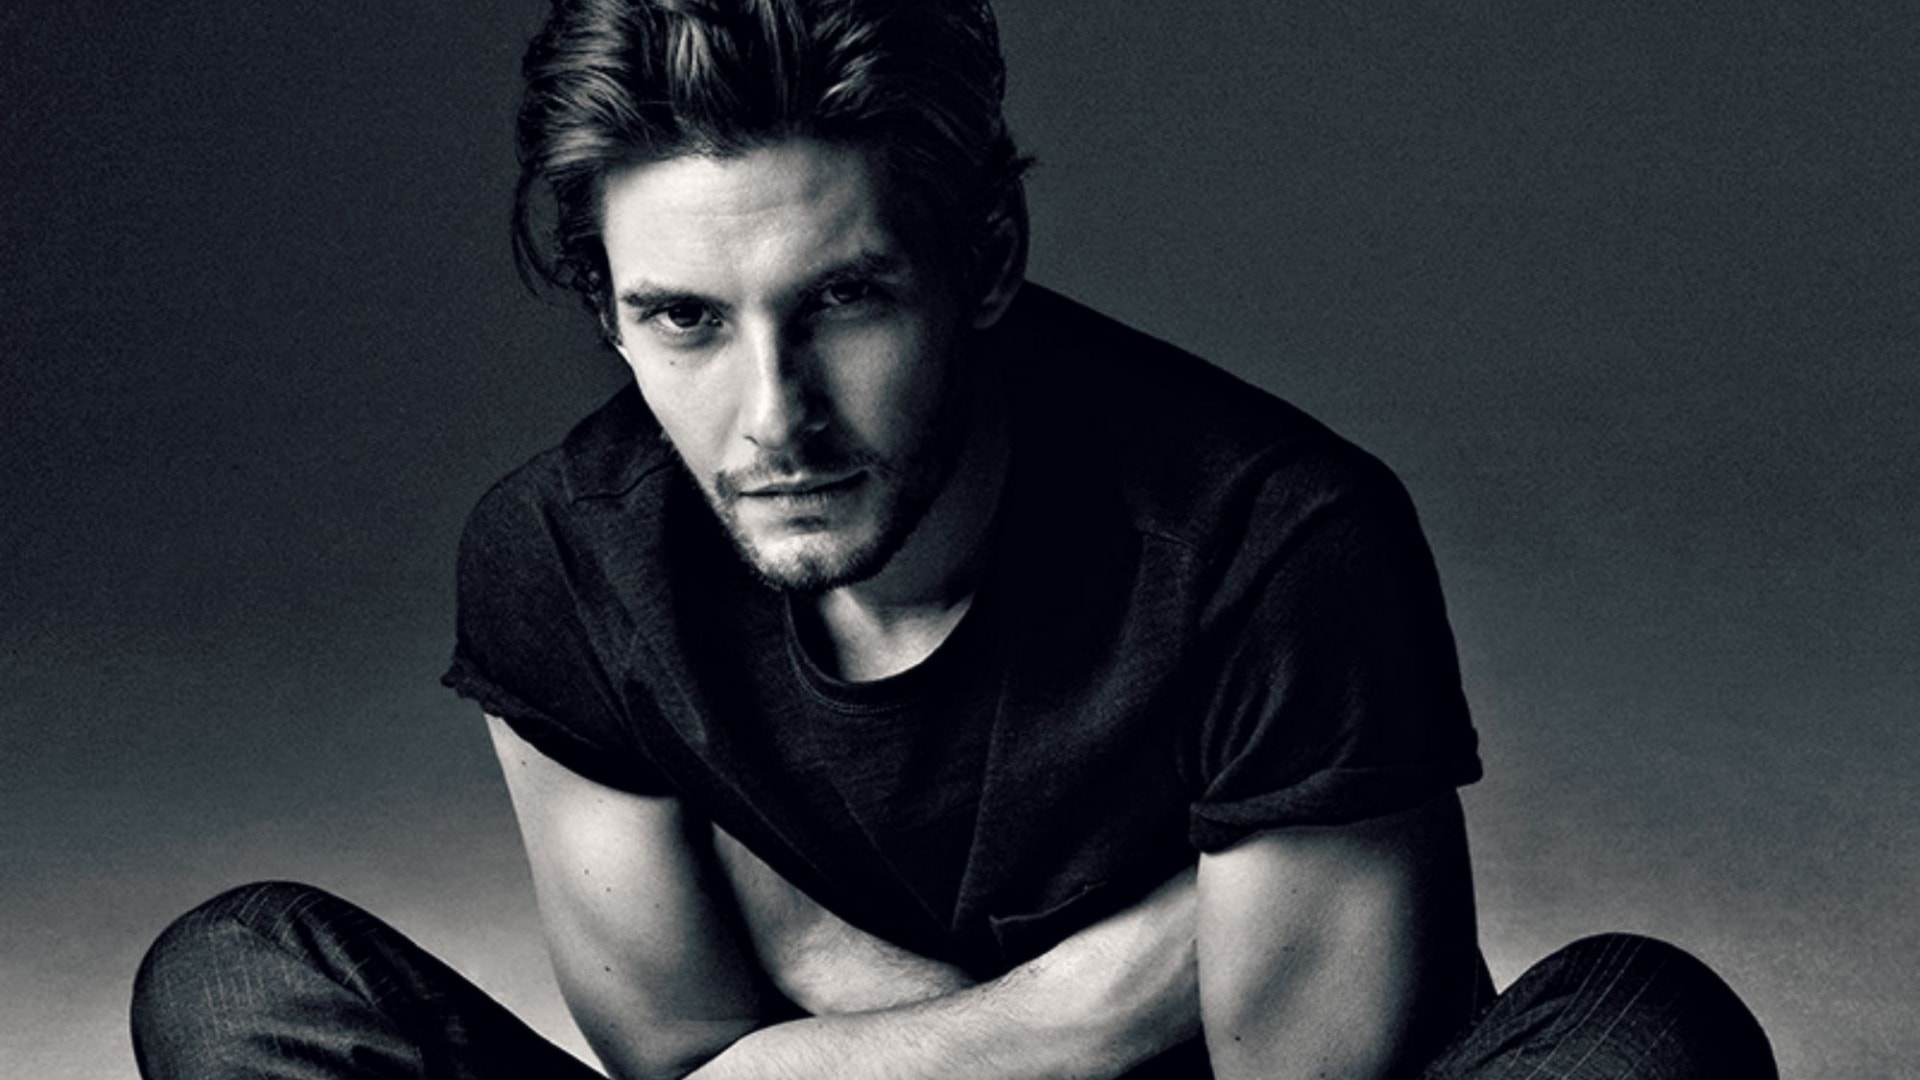 Ben Barnes Wallpapers hd